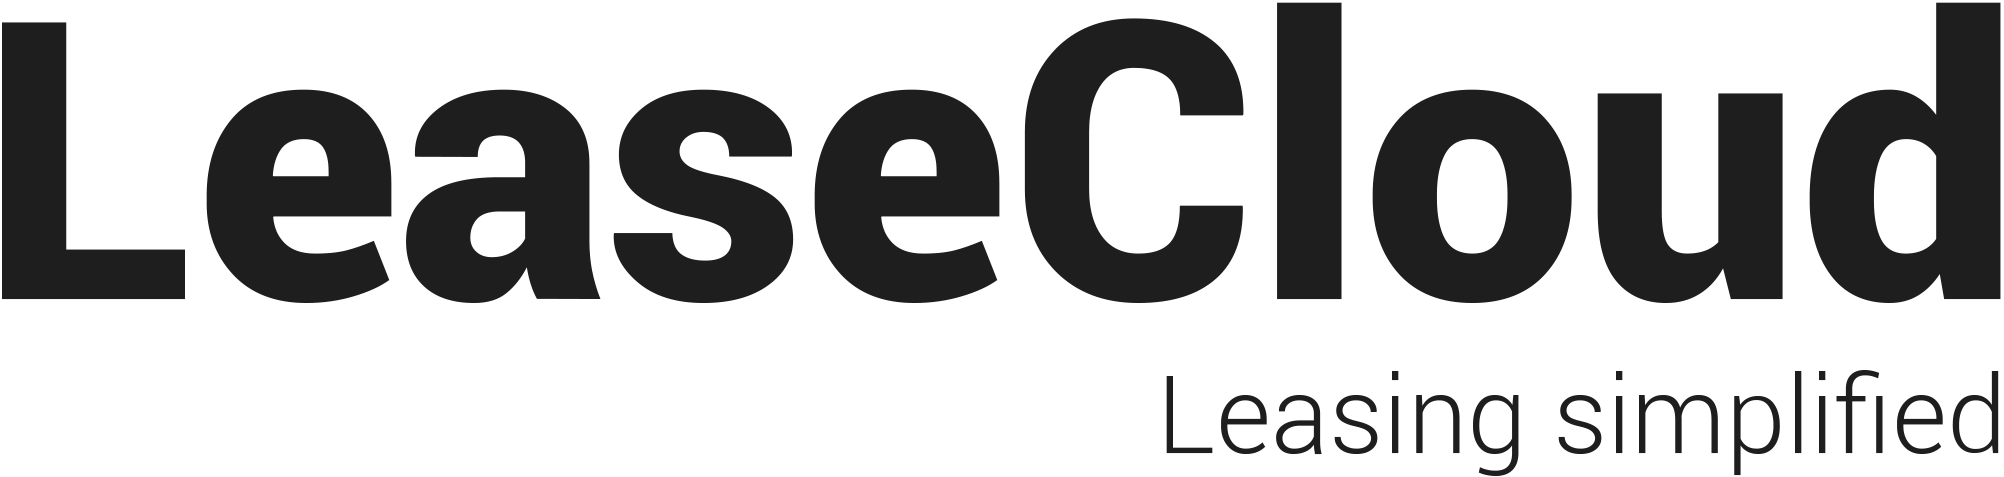 Leasecloud footer logo